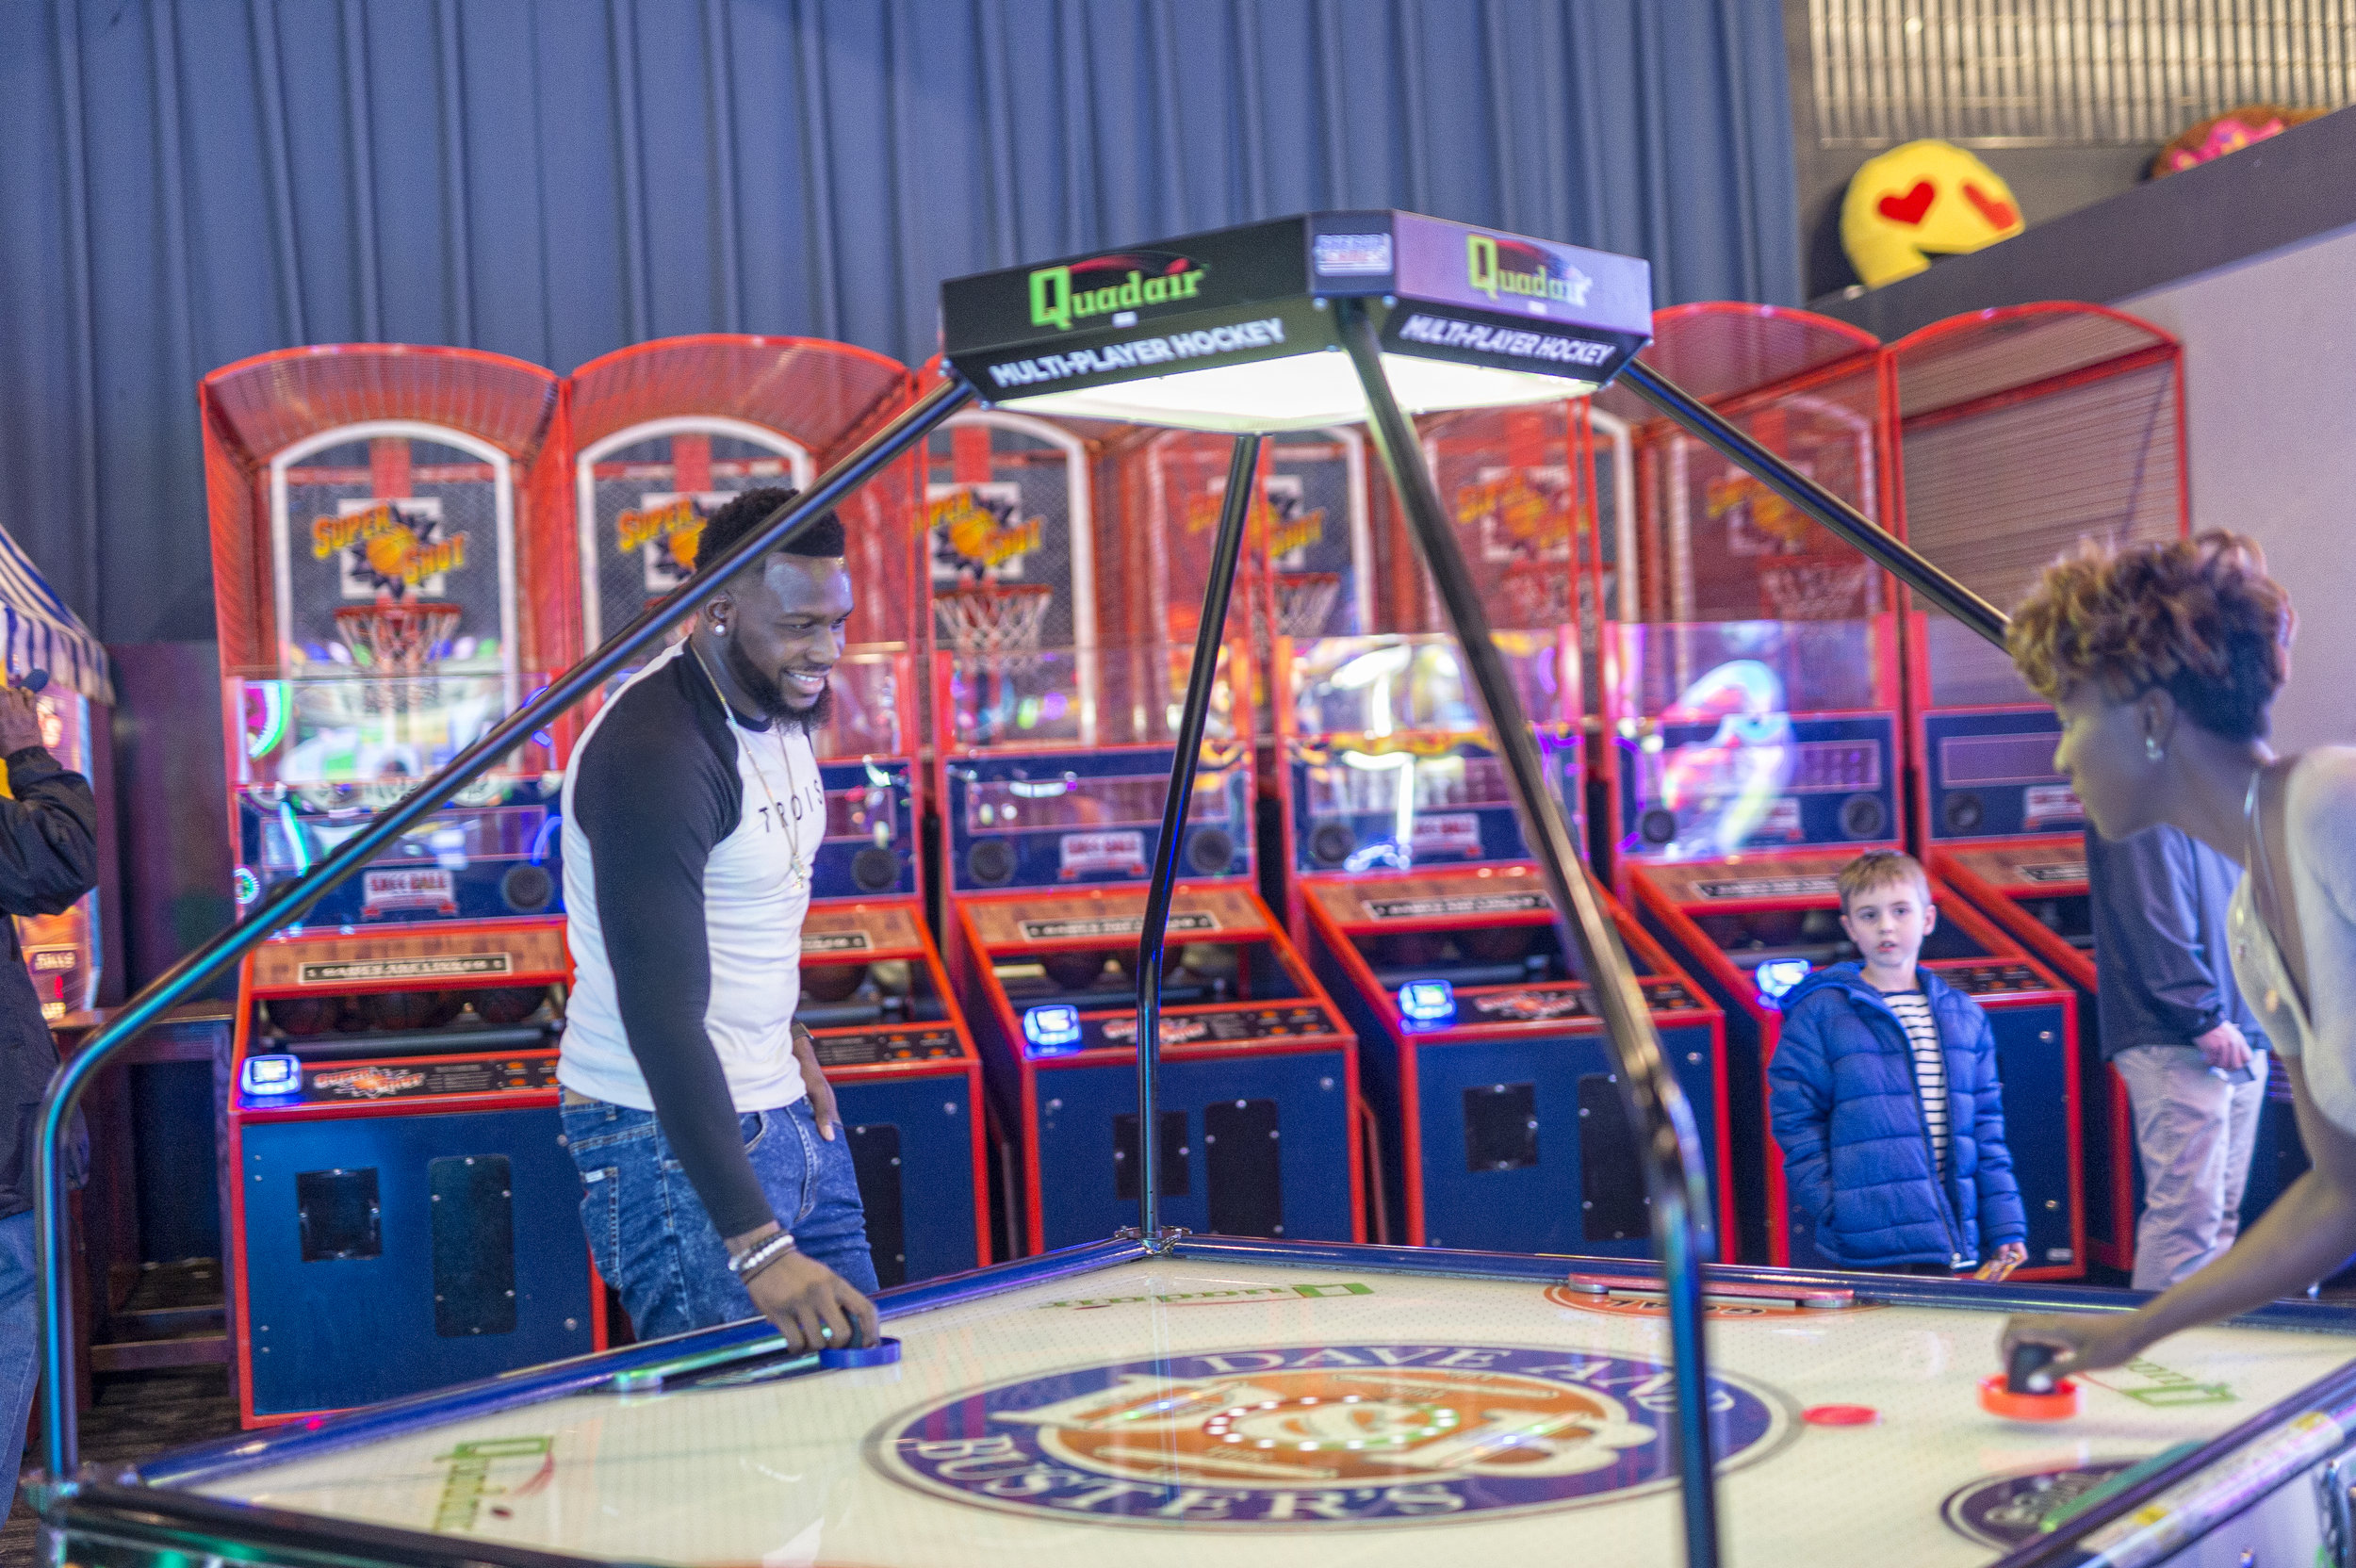 themBoldens_dave-and-busters-black-love-16.jpg